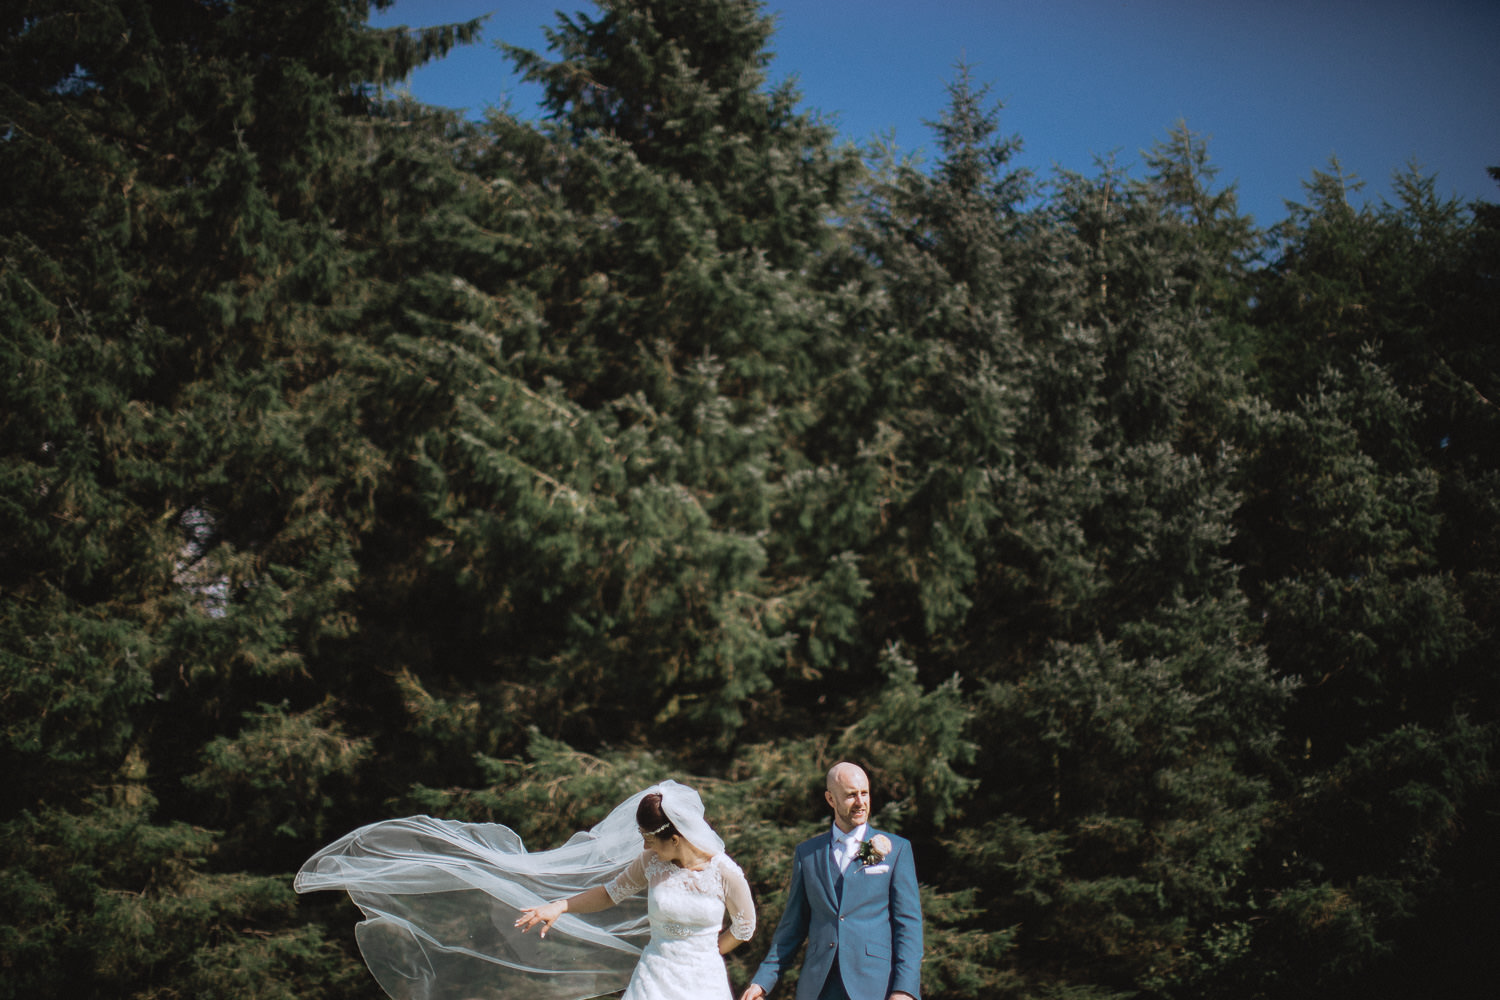 Scout Hut Wedding from Fox & Bear Photography - bride and groom in Macclesfield forest - windy day